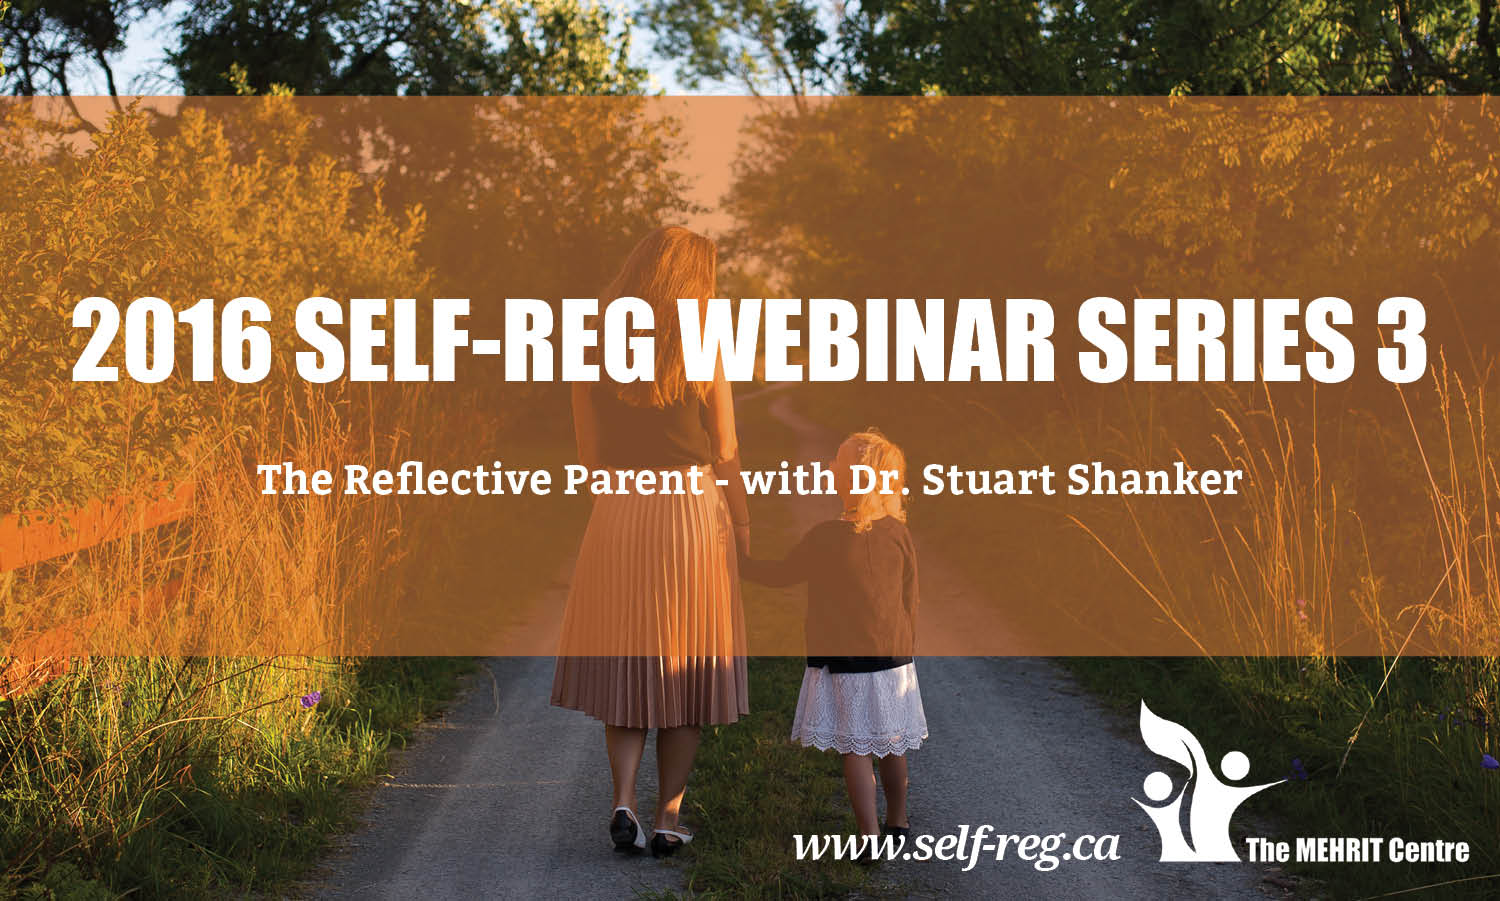 Self-Reg Webinars 2016 - Series 3 with Dr. Stuart Shanker: The Reflective Parent: In Support of Self-Reg Parenting - Individual webinars